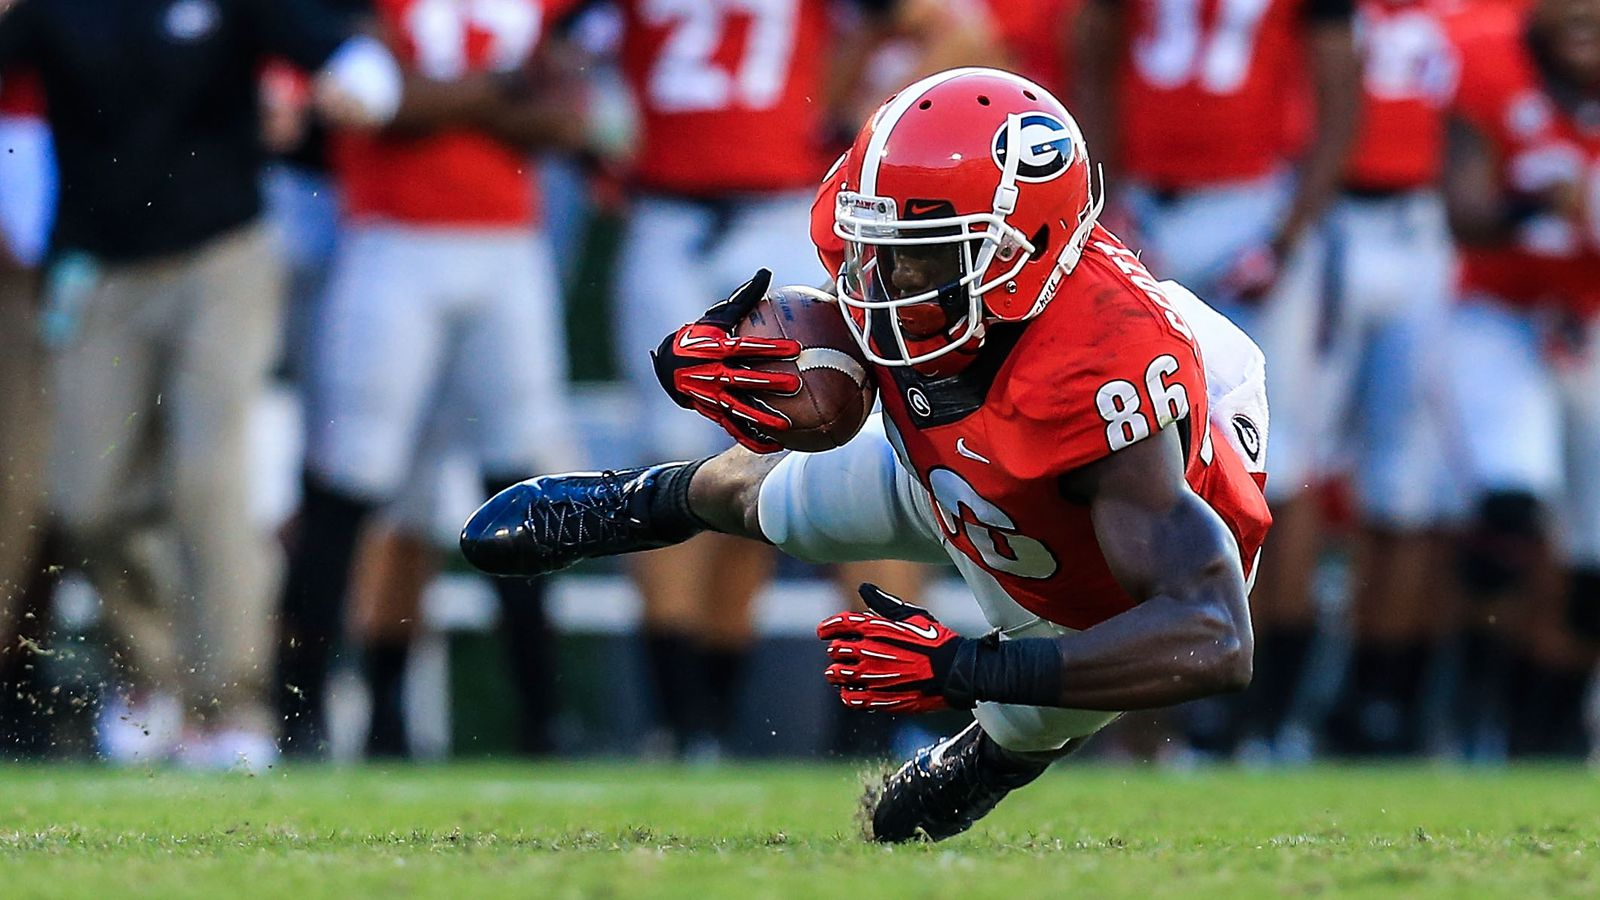 Georgia Football: Will Justin Scott-Wesley's Injury Greatly Impact the Offense?